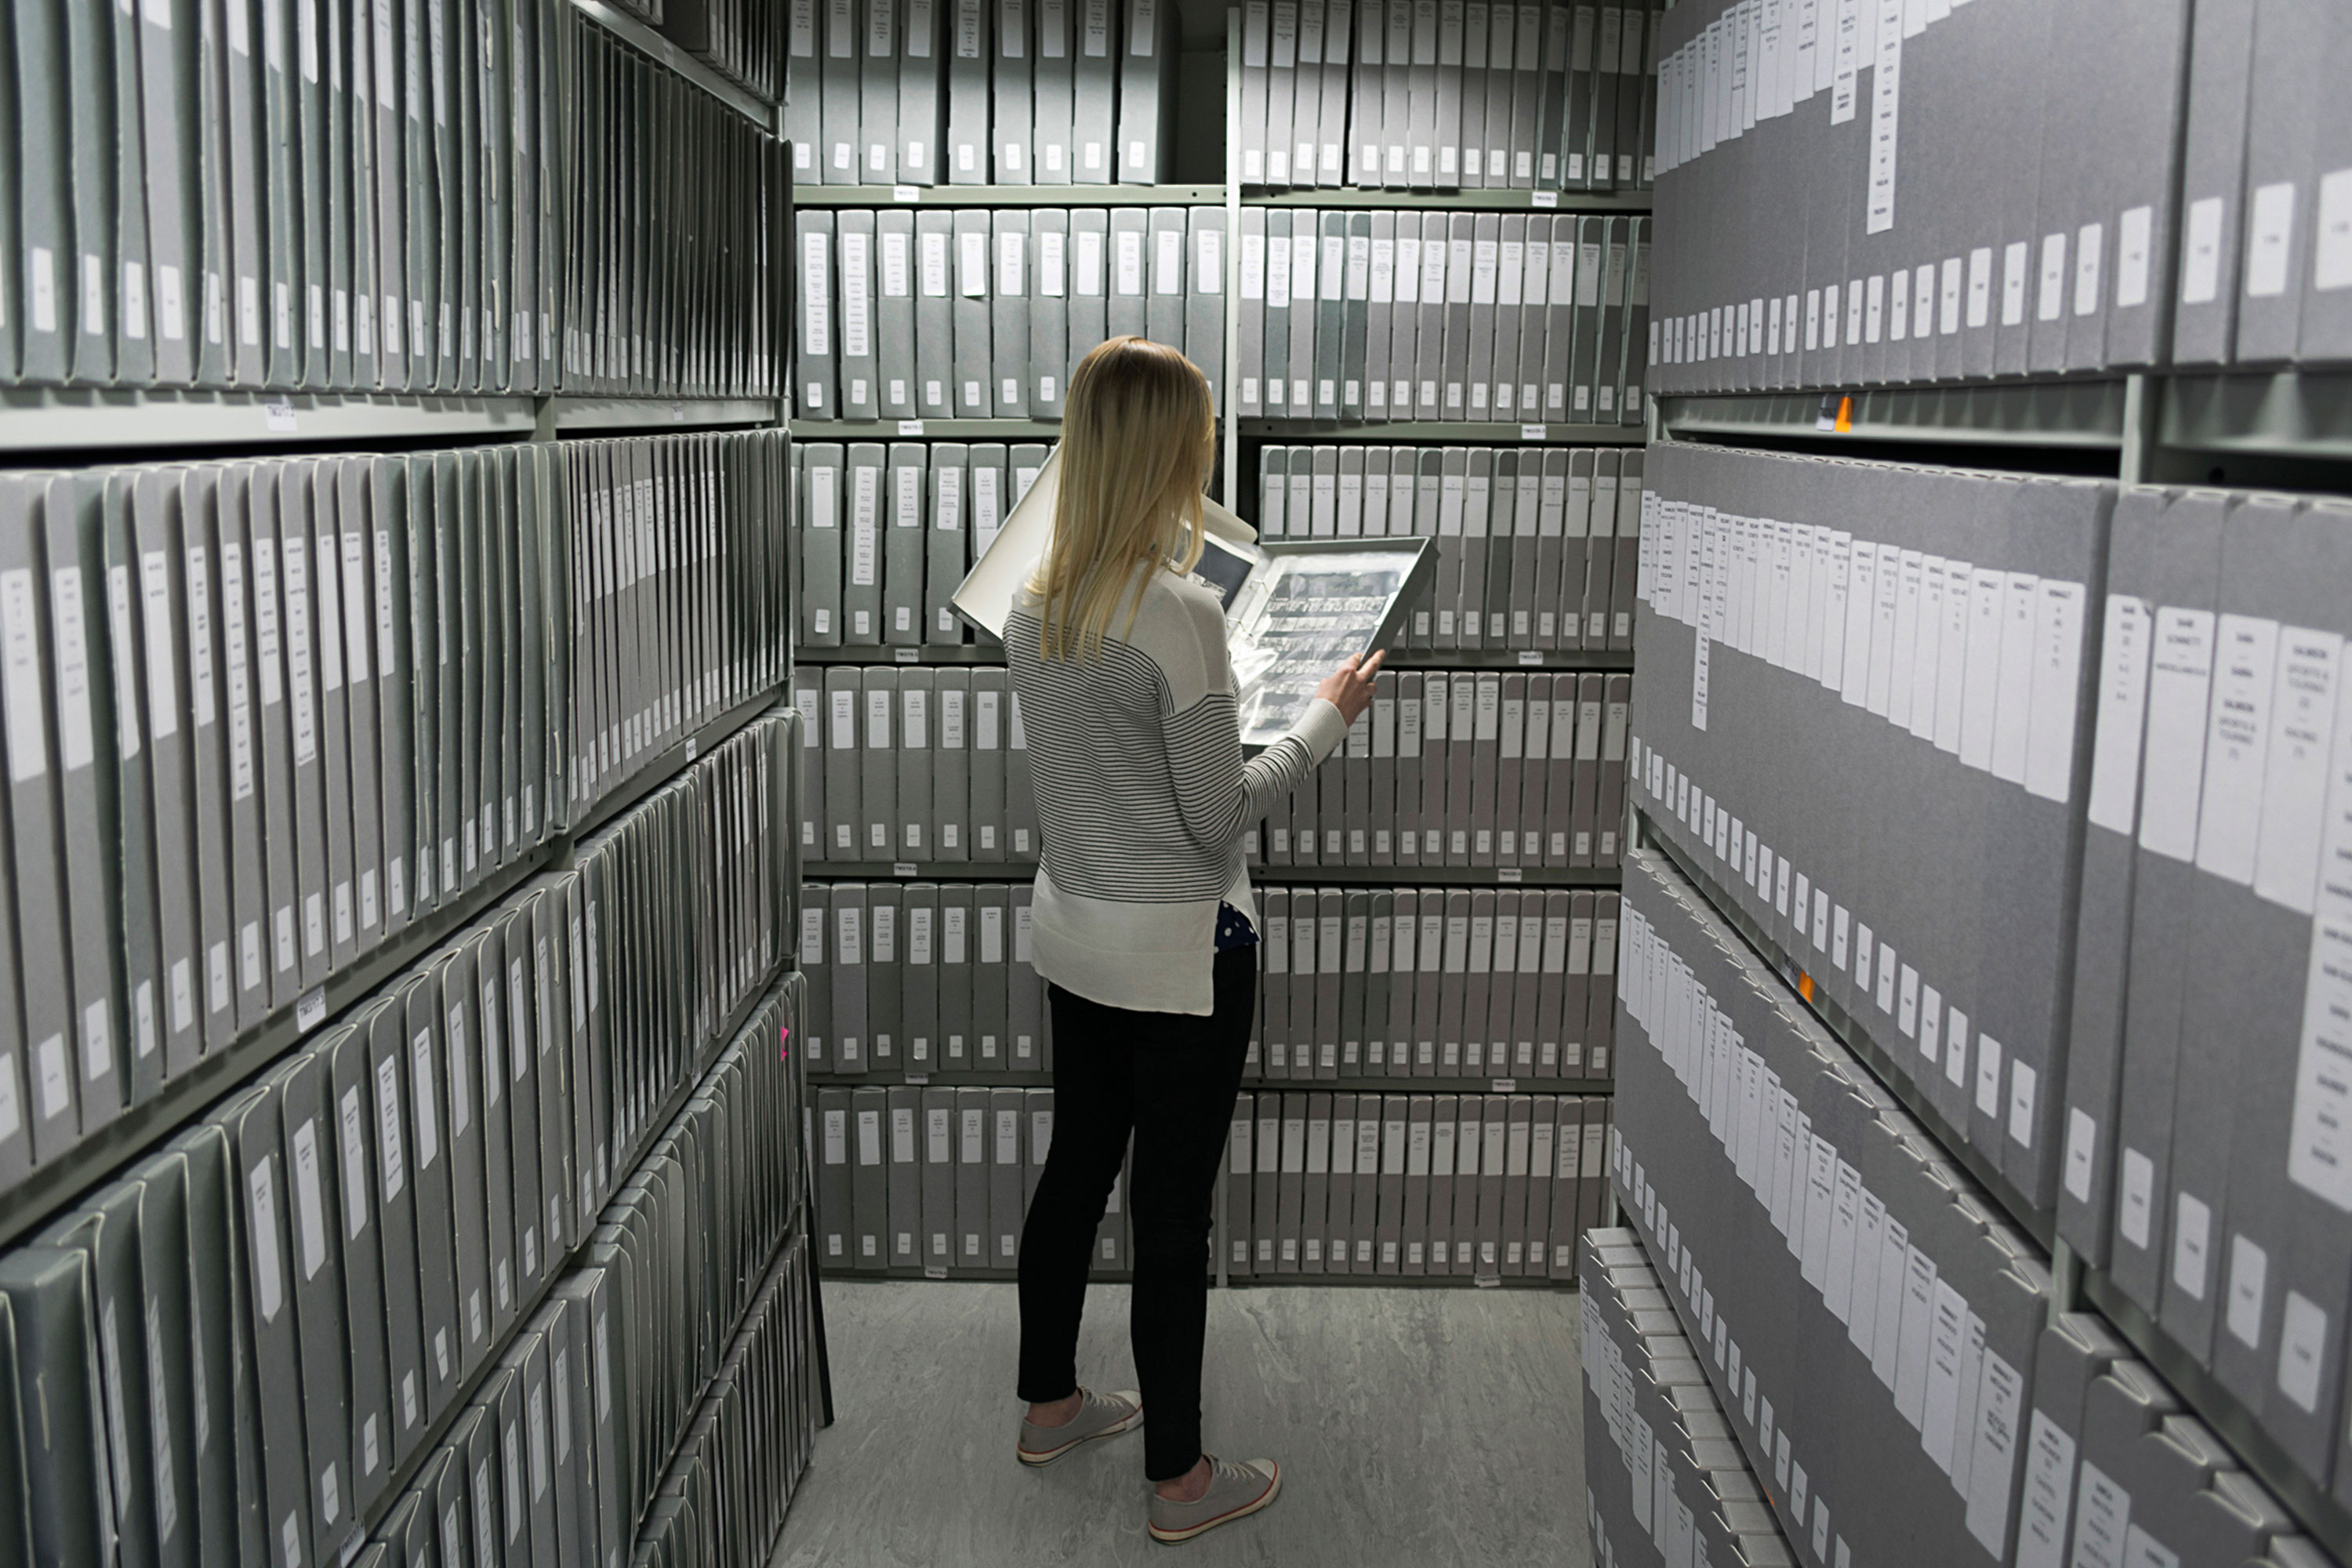 A woman looking at a photograph surrounded by many boxes on shelves